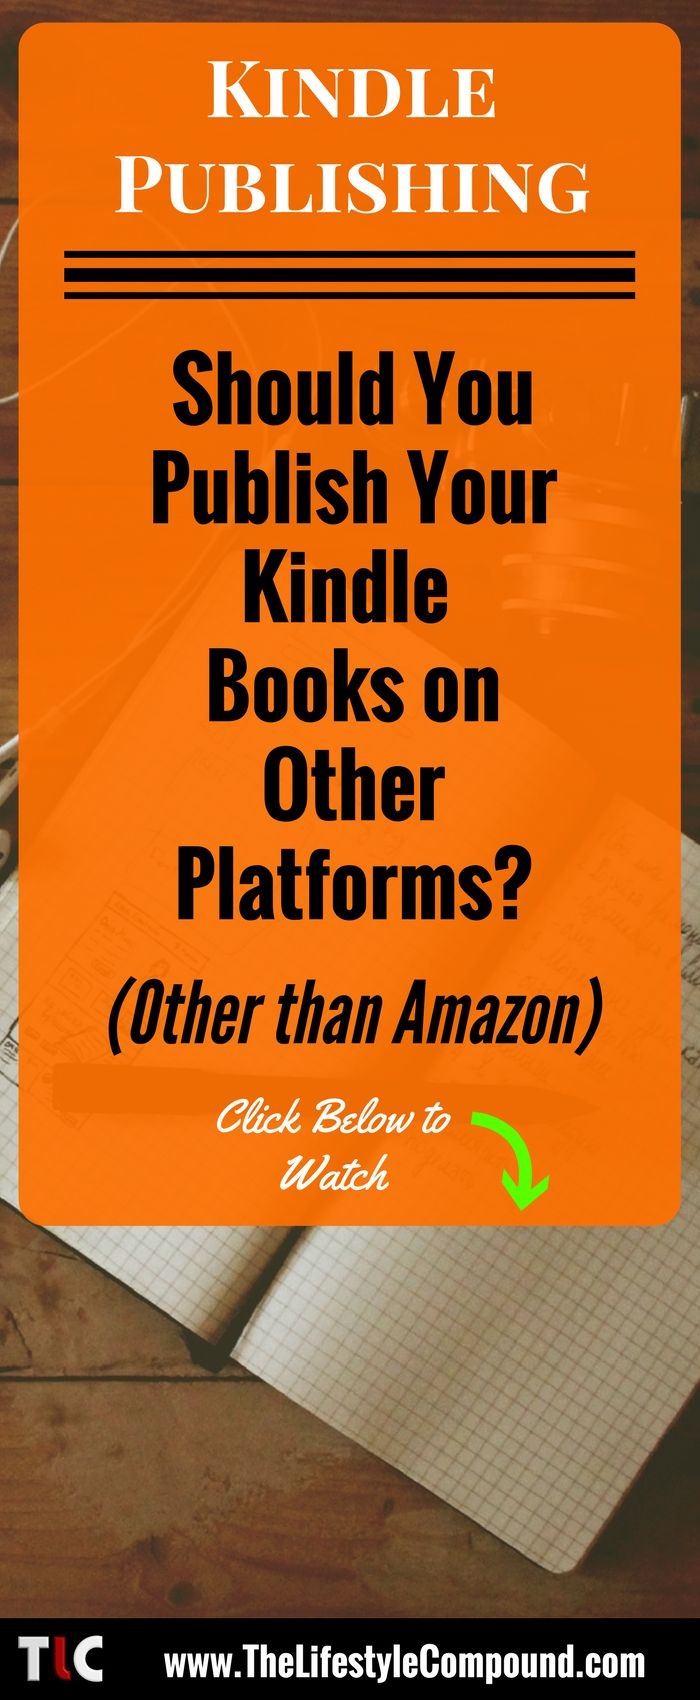 849 best ebook publishing amazon images on pinterest amazon kindle a question i get sometimes is whether you should publish your books on other platforms other than amazon if youre into kindle publishing and youve fandeluxe Gallery